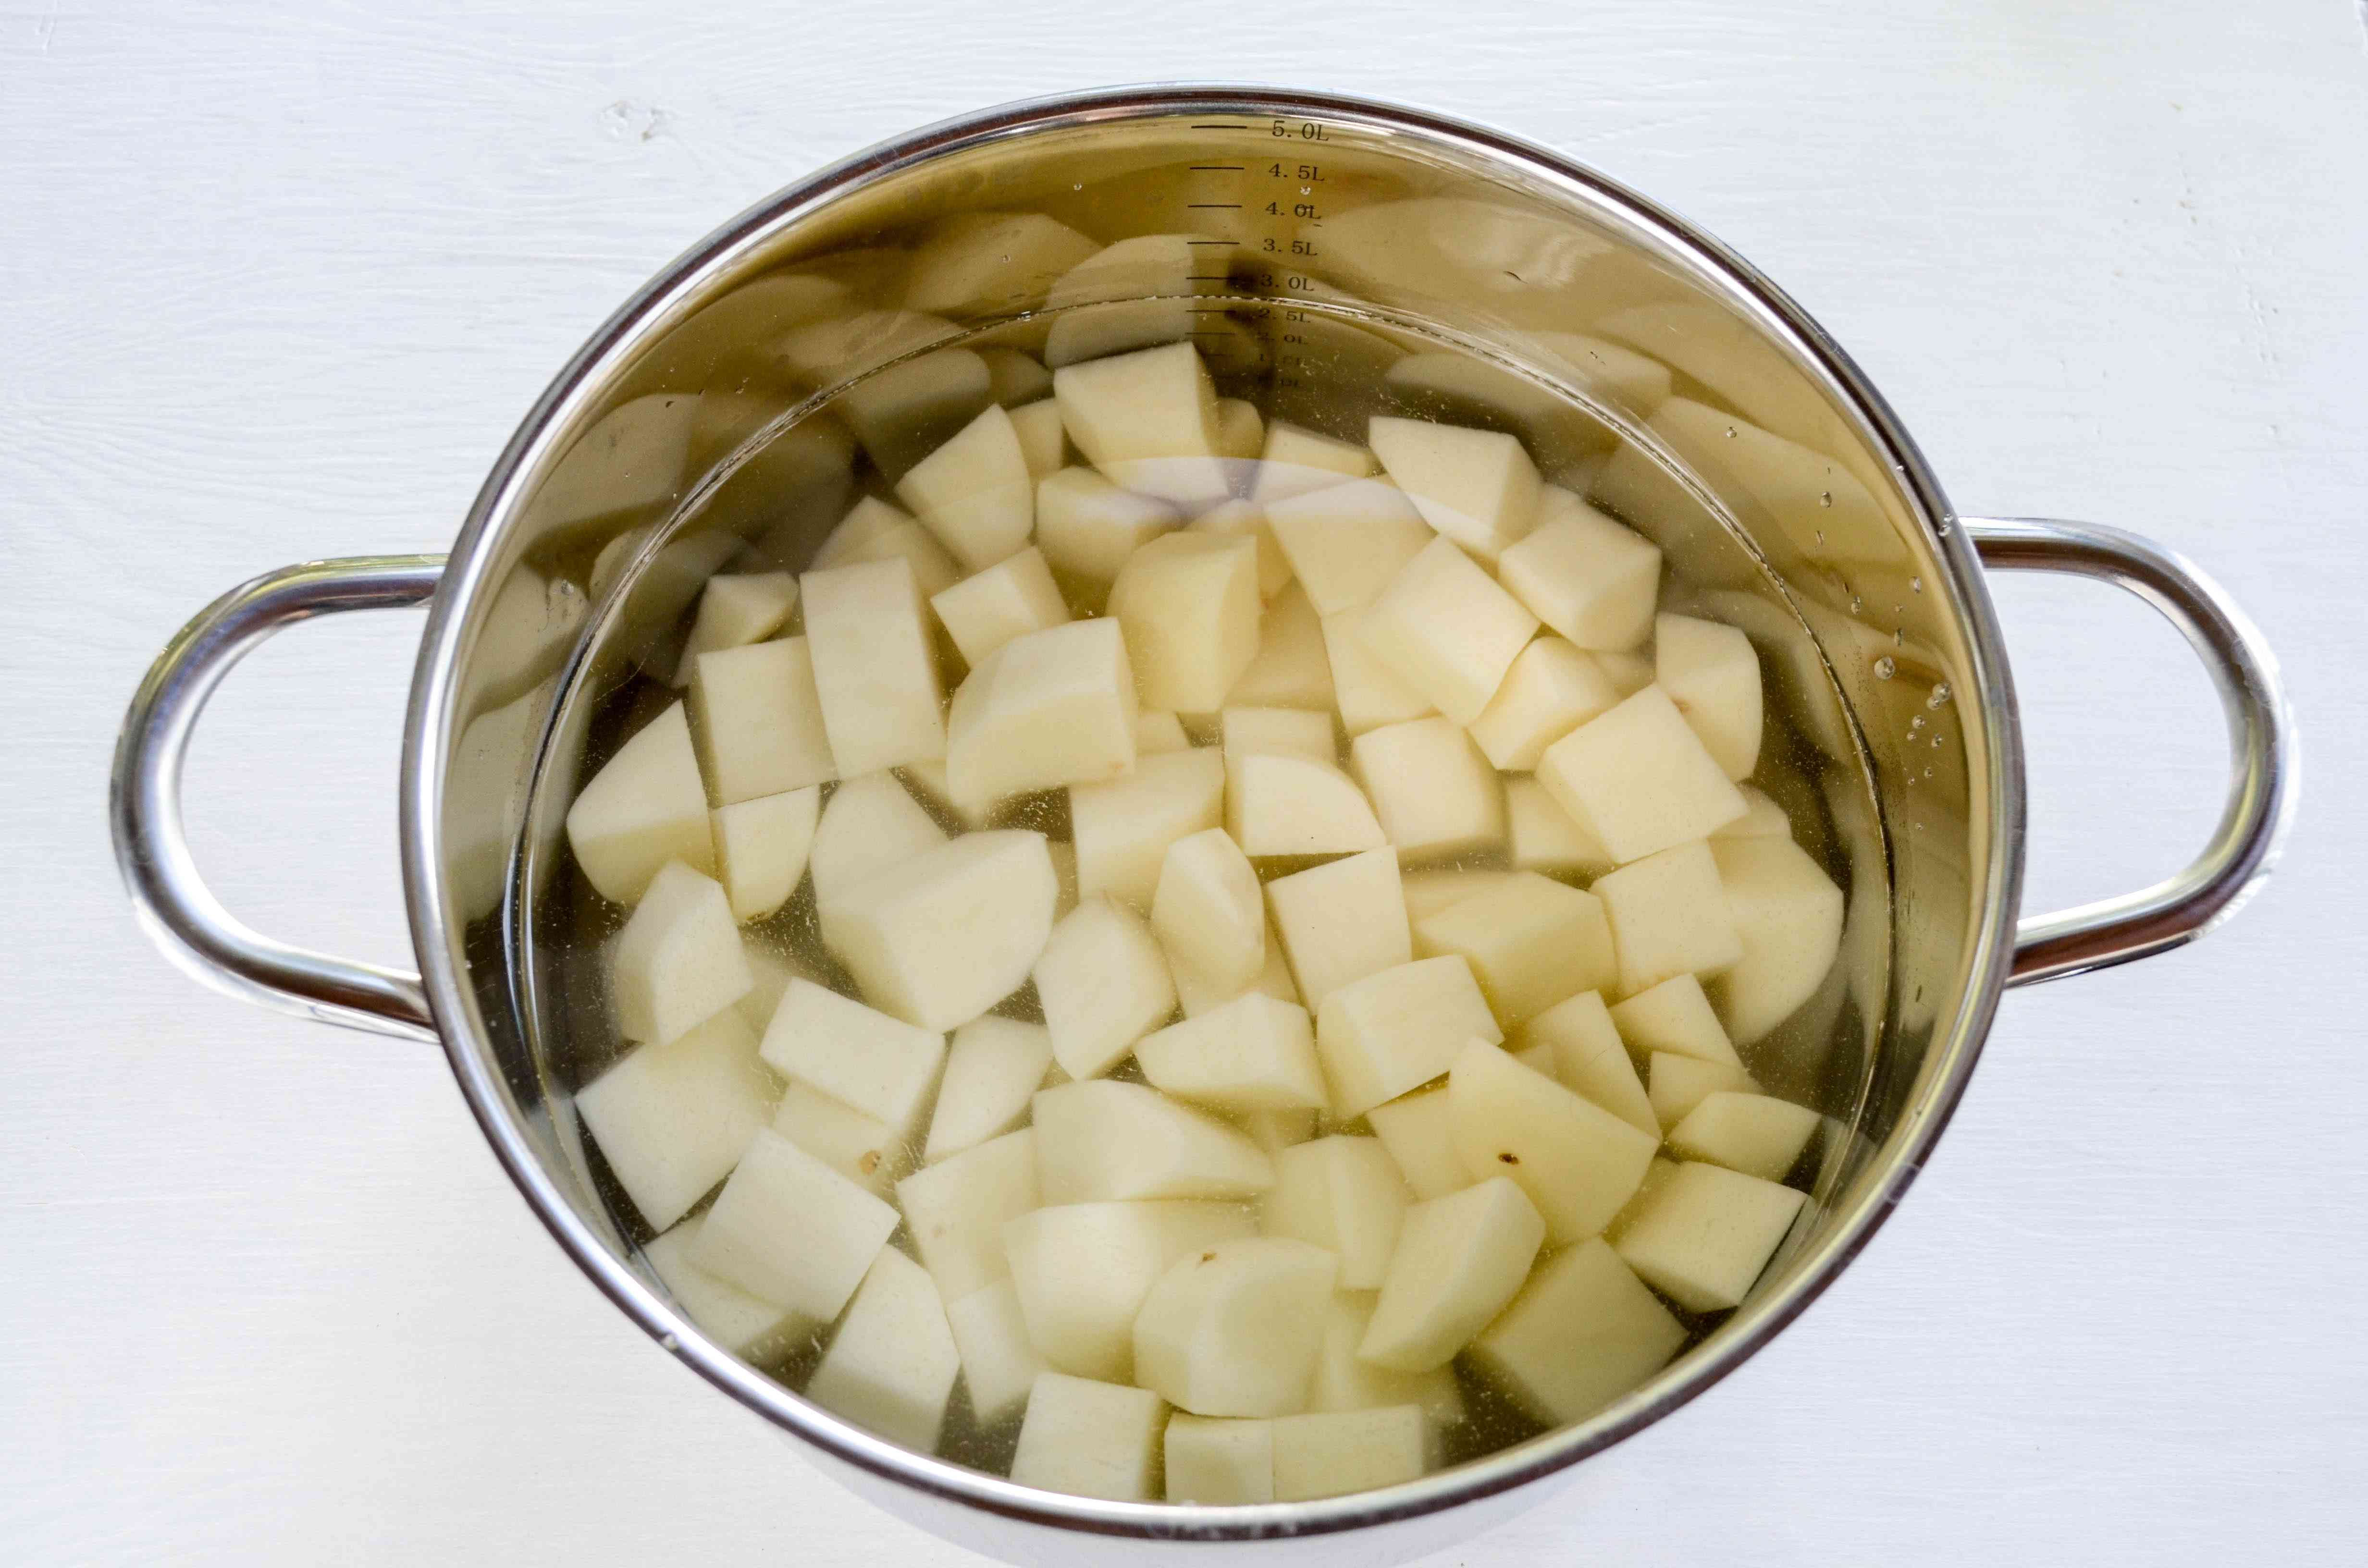 Cover the potatoes with water